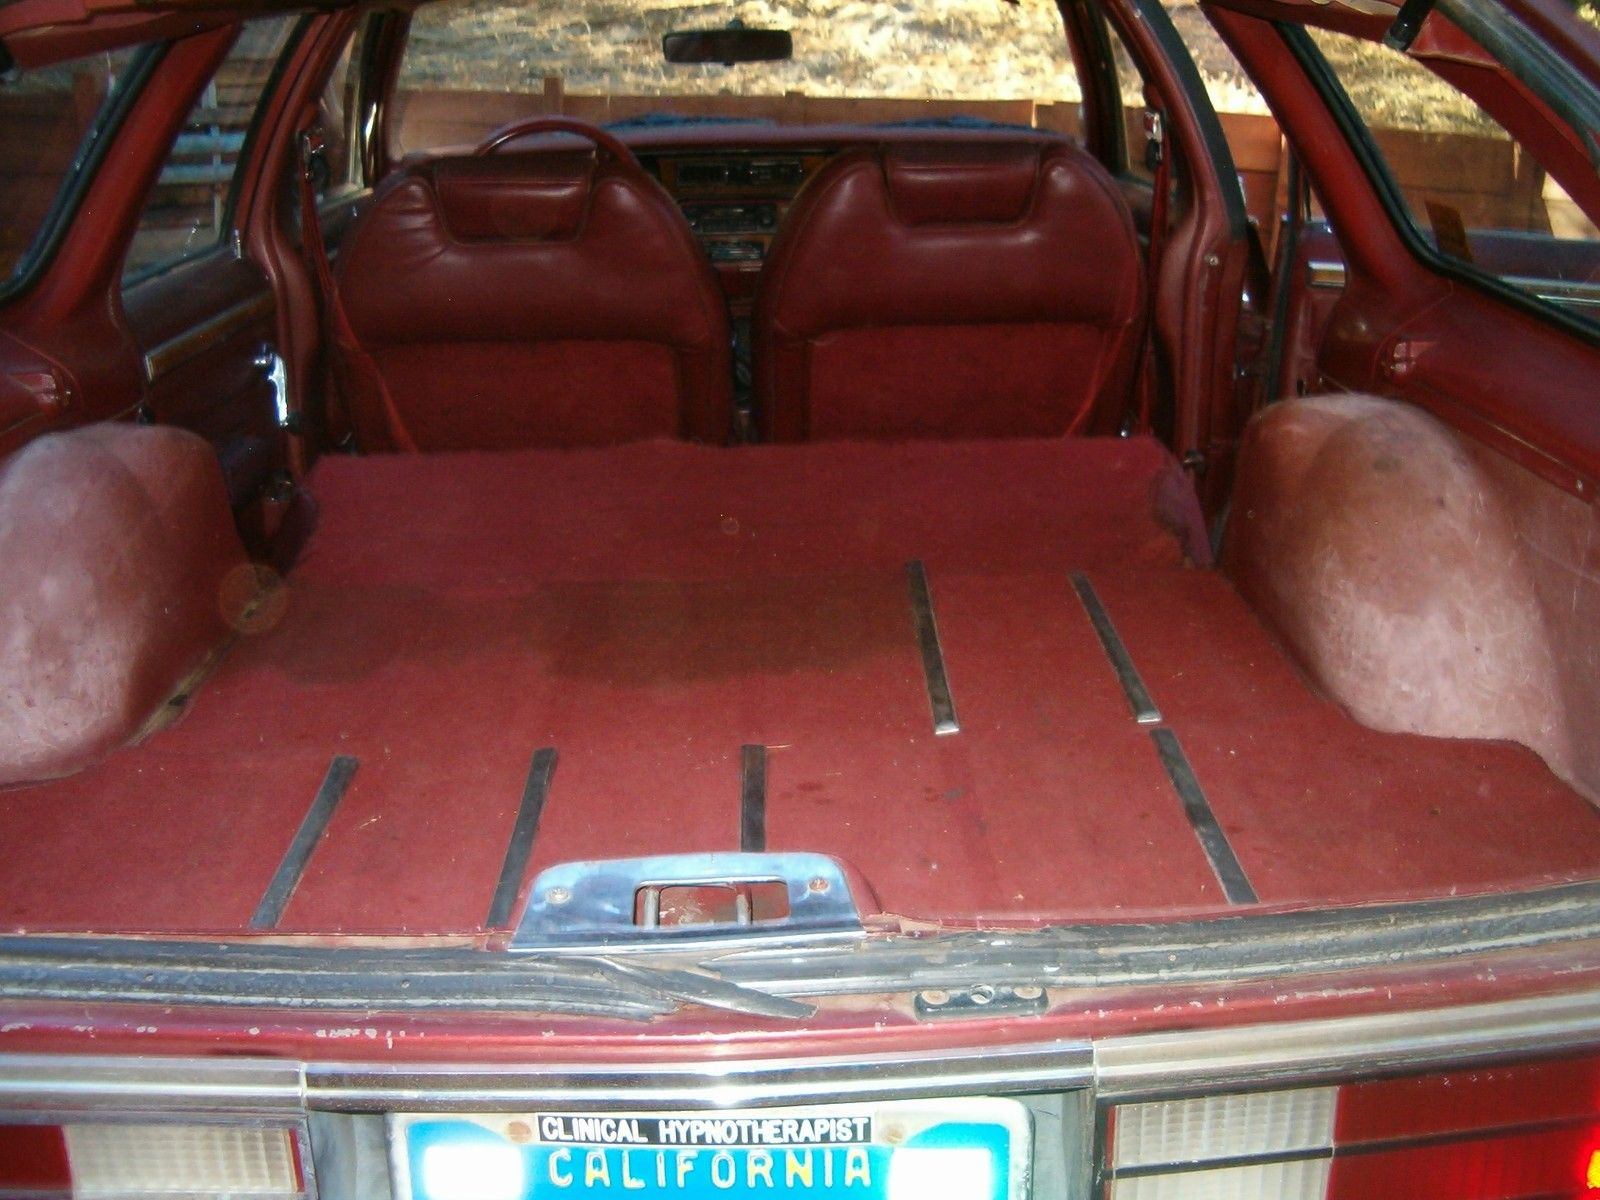 This 1984 Amc Eagle Deserves To Be Built Into An Off Egal Wiring Diagram Every Other Part Of The Car Is Wagon As Youd Know It A Useable Station That Can Handle Its Own Road We Wouldnt Where Start With